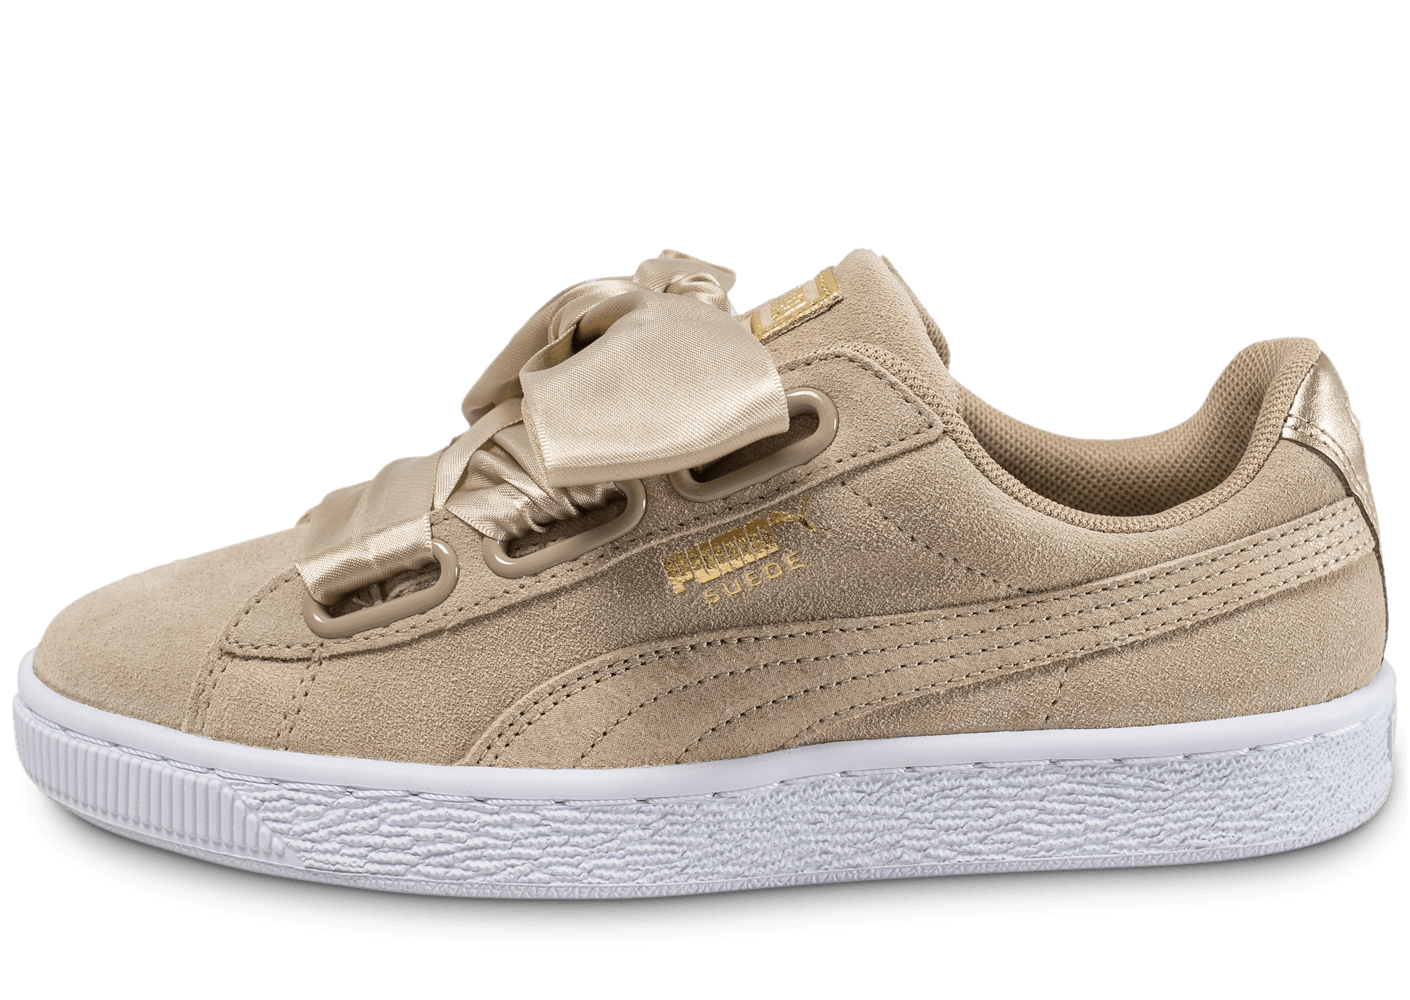 puma suede heart safari beige chaussures black friday. Black Bedroom Furniture Sets. Home Design Ideas